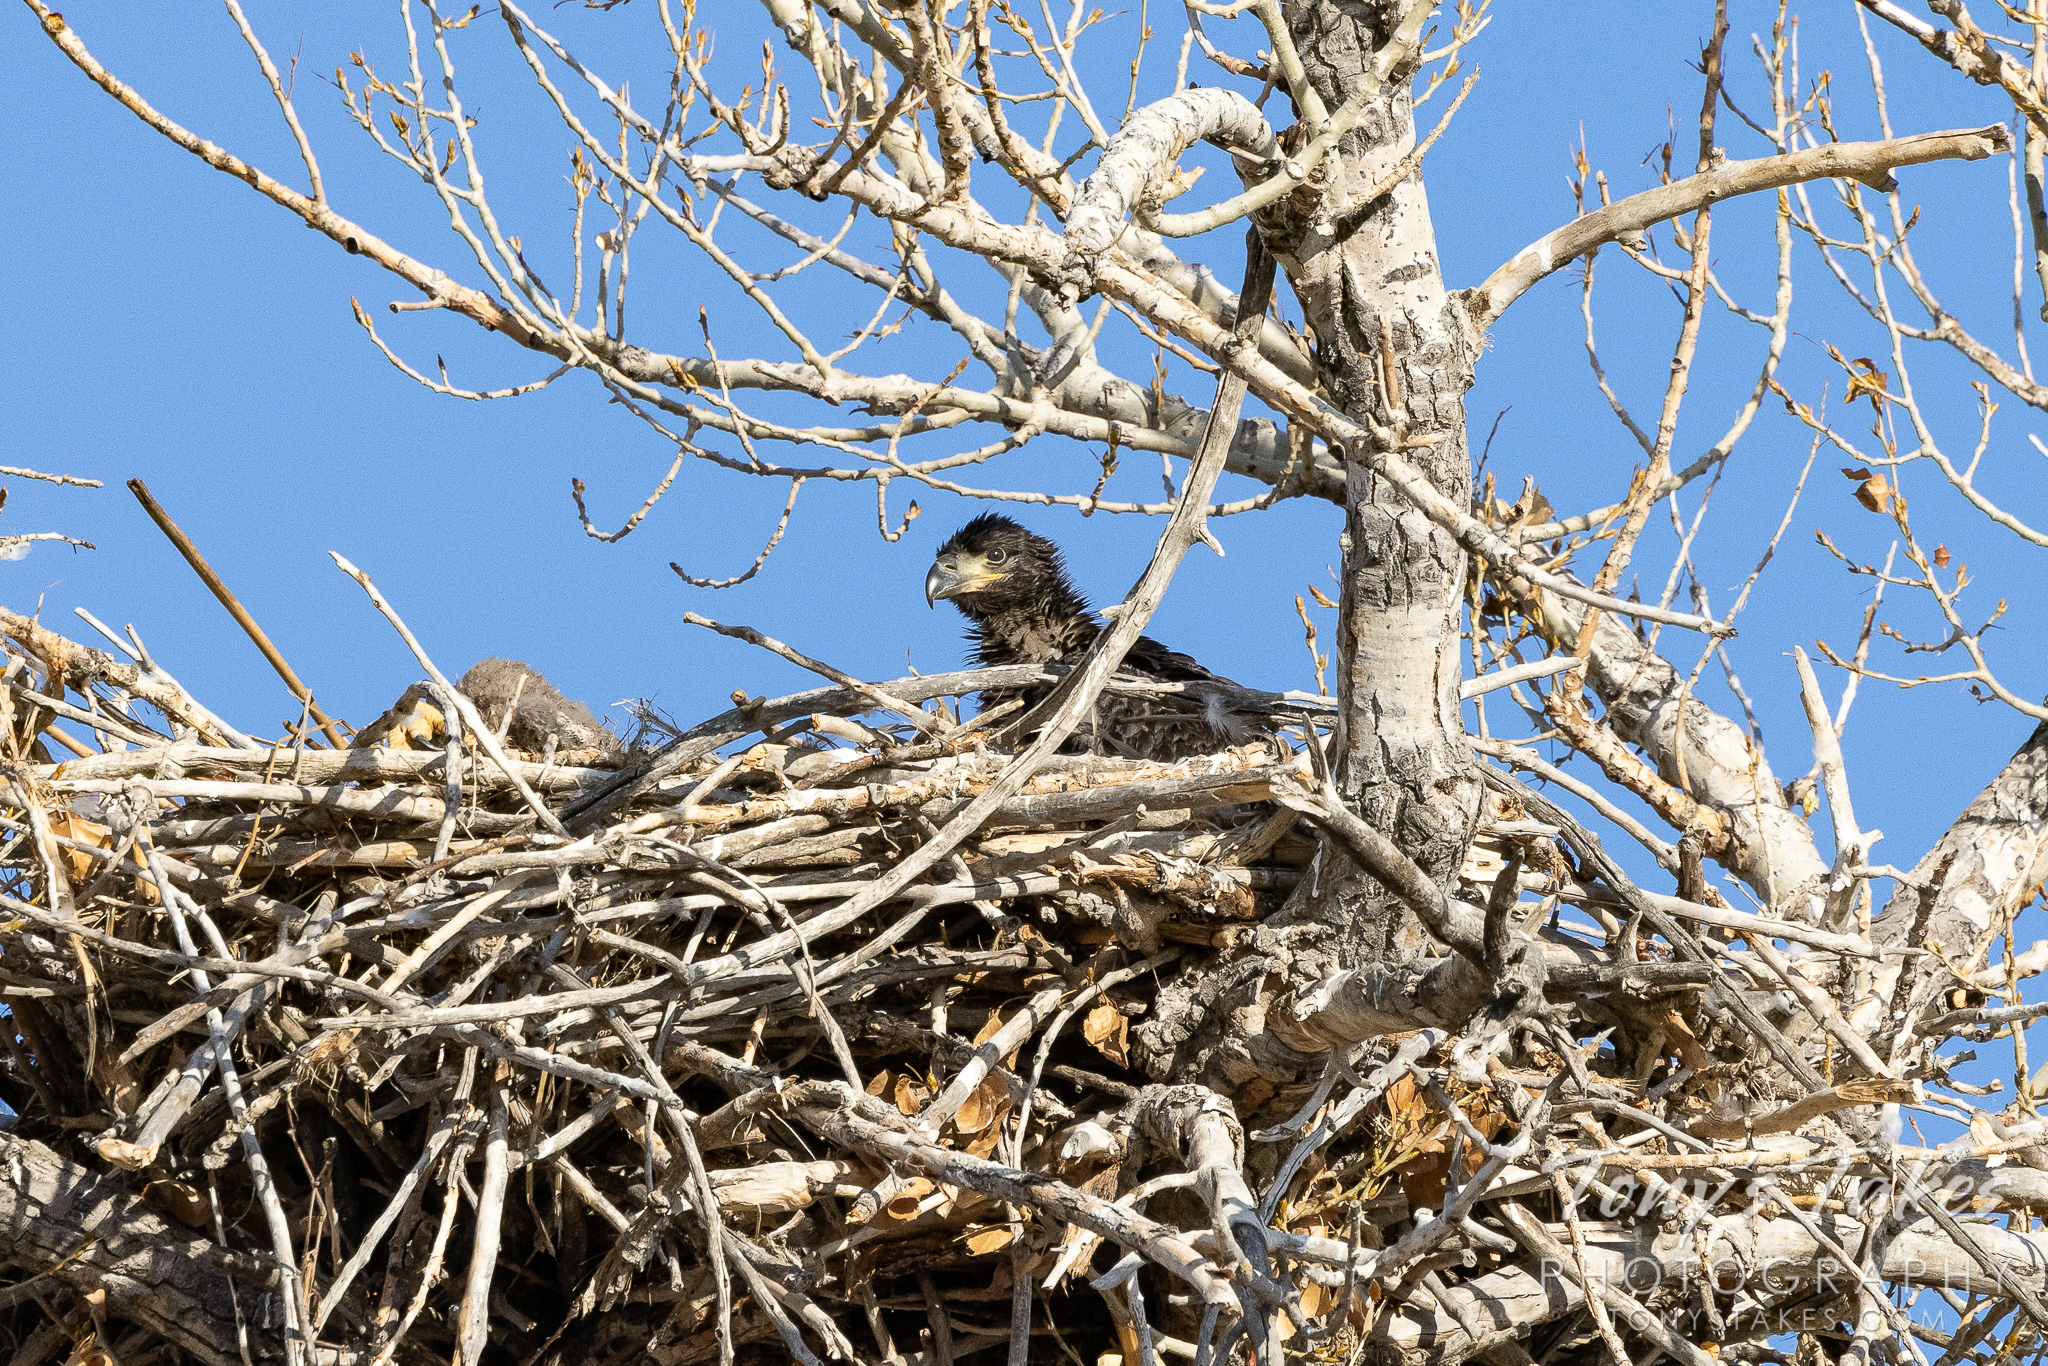 First good look at one of the newest bald eagles on the Colorado Front Range